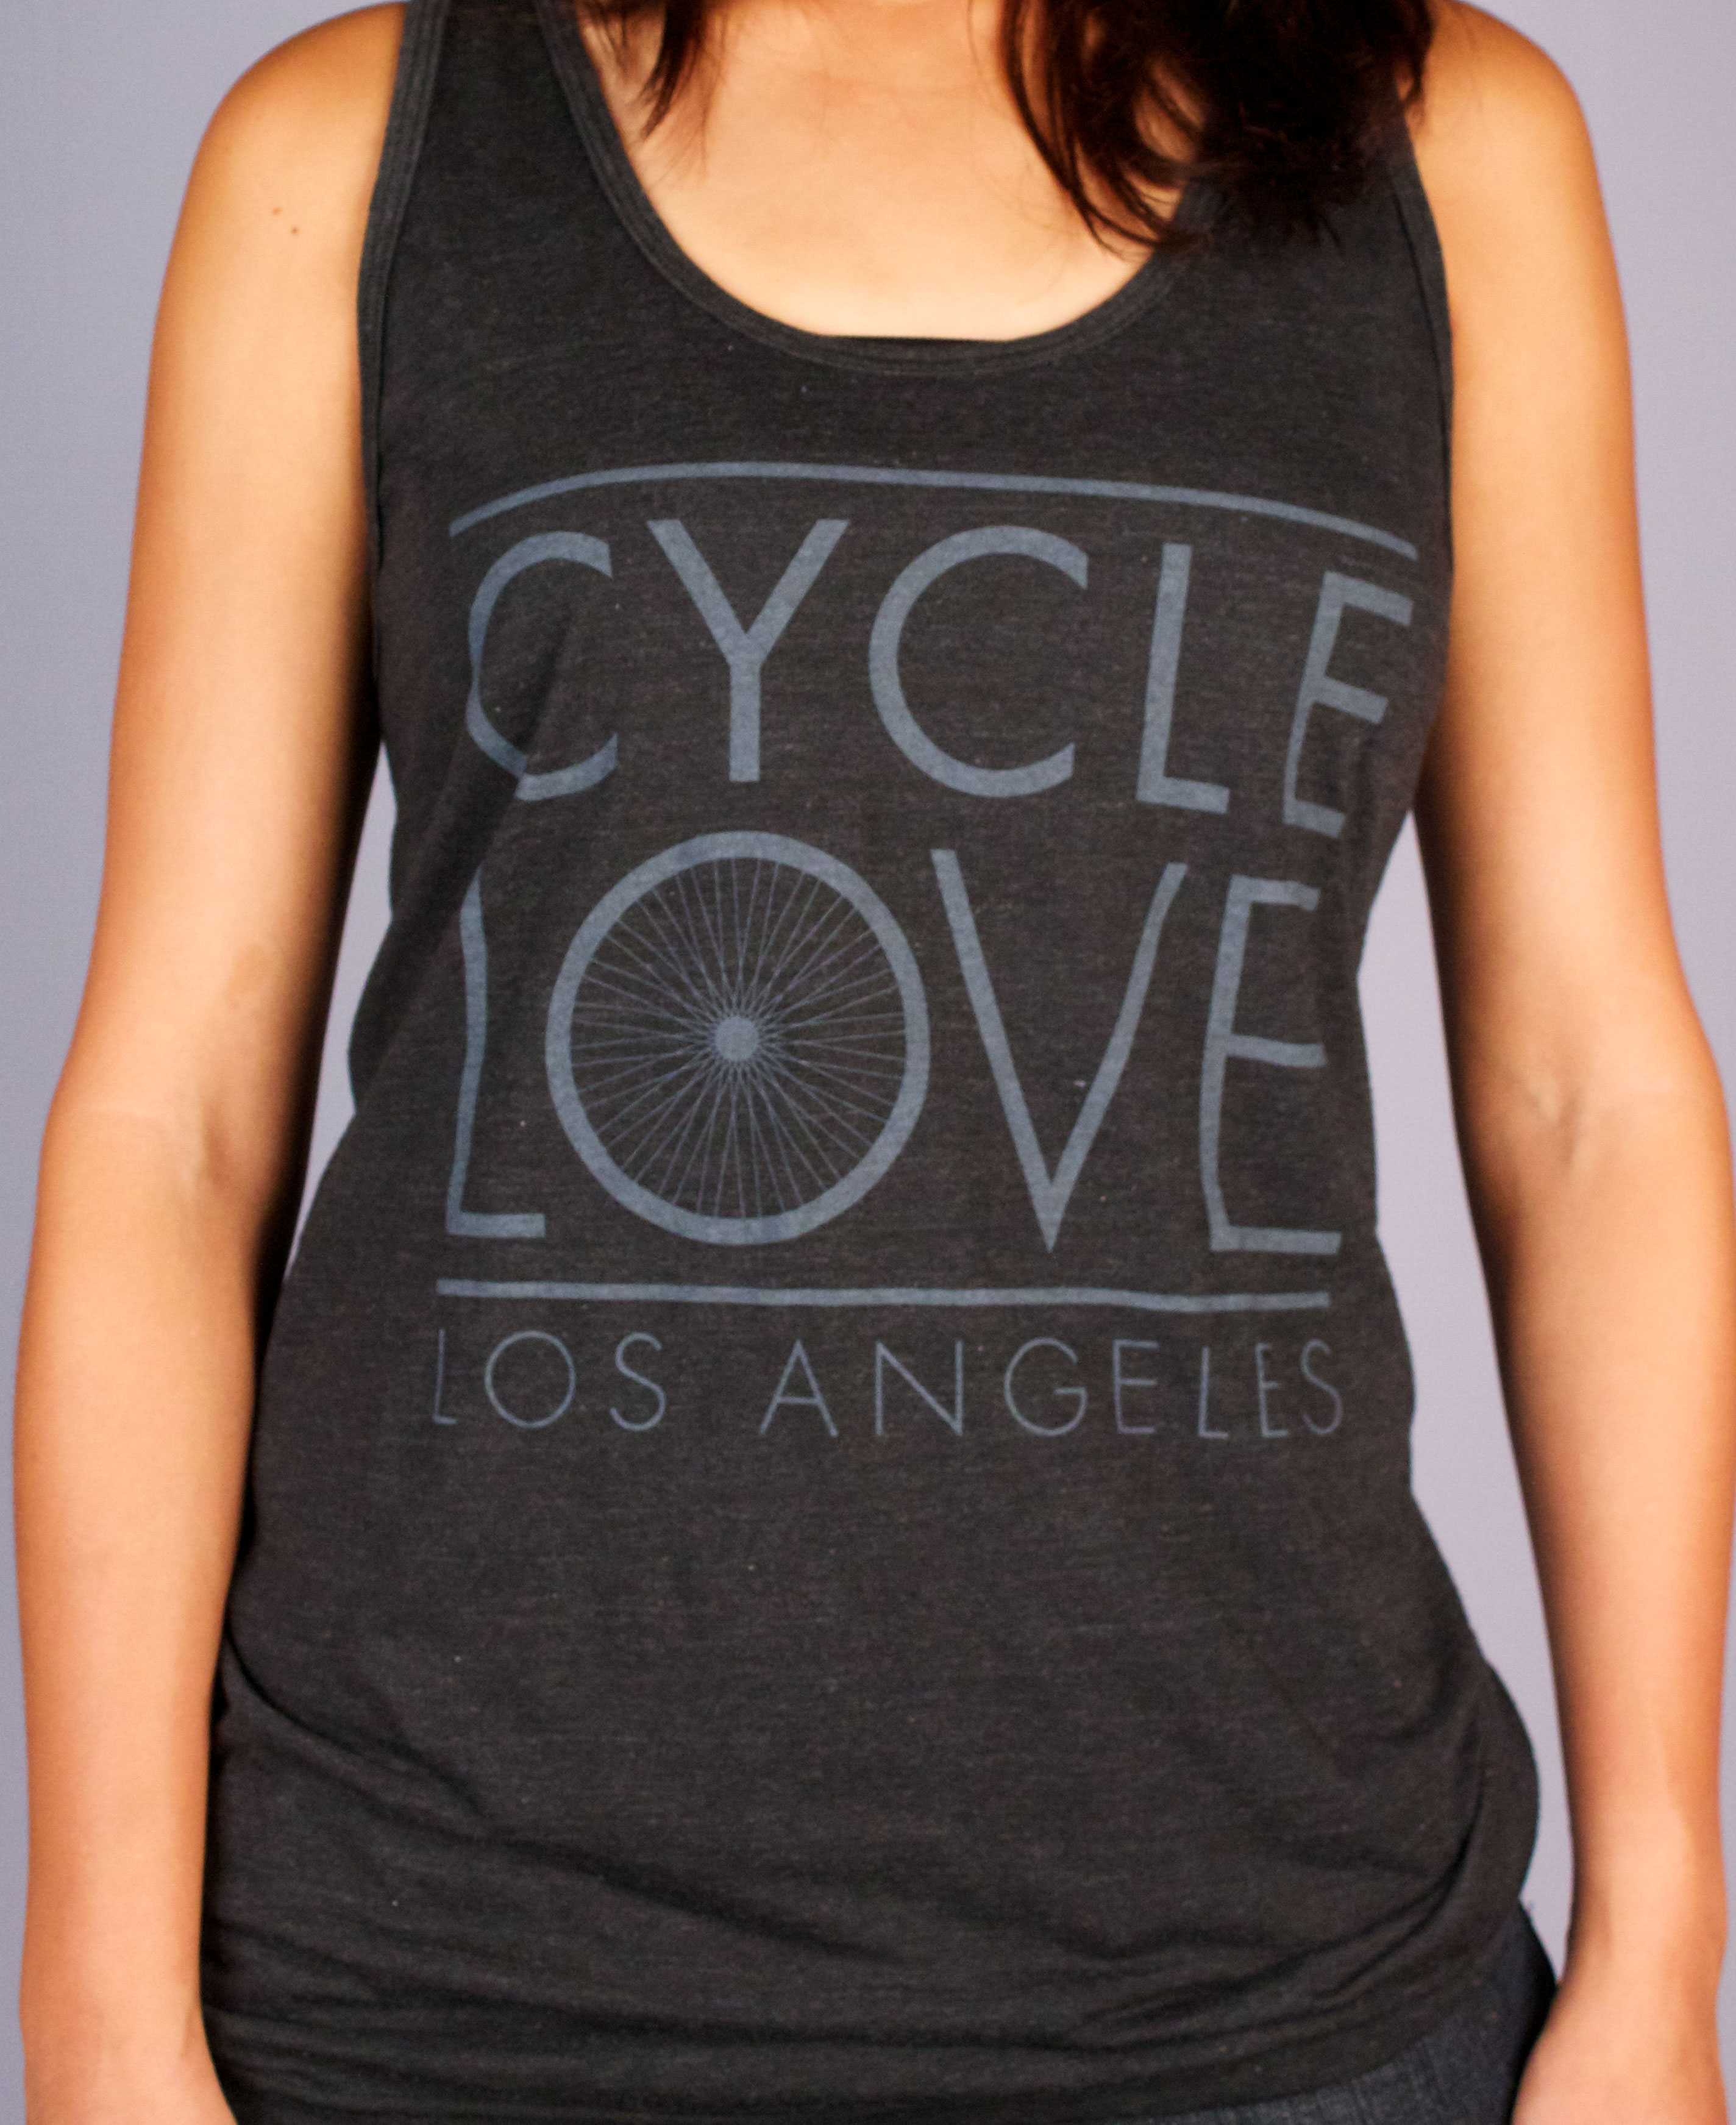 Cycle-love-logo-tank-dark-grey-womens_original